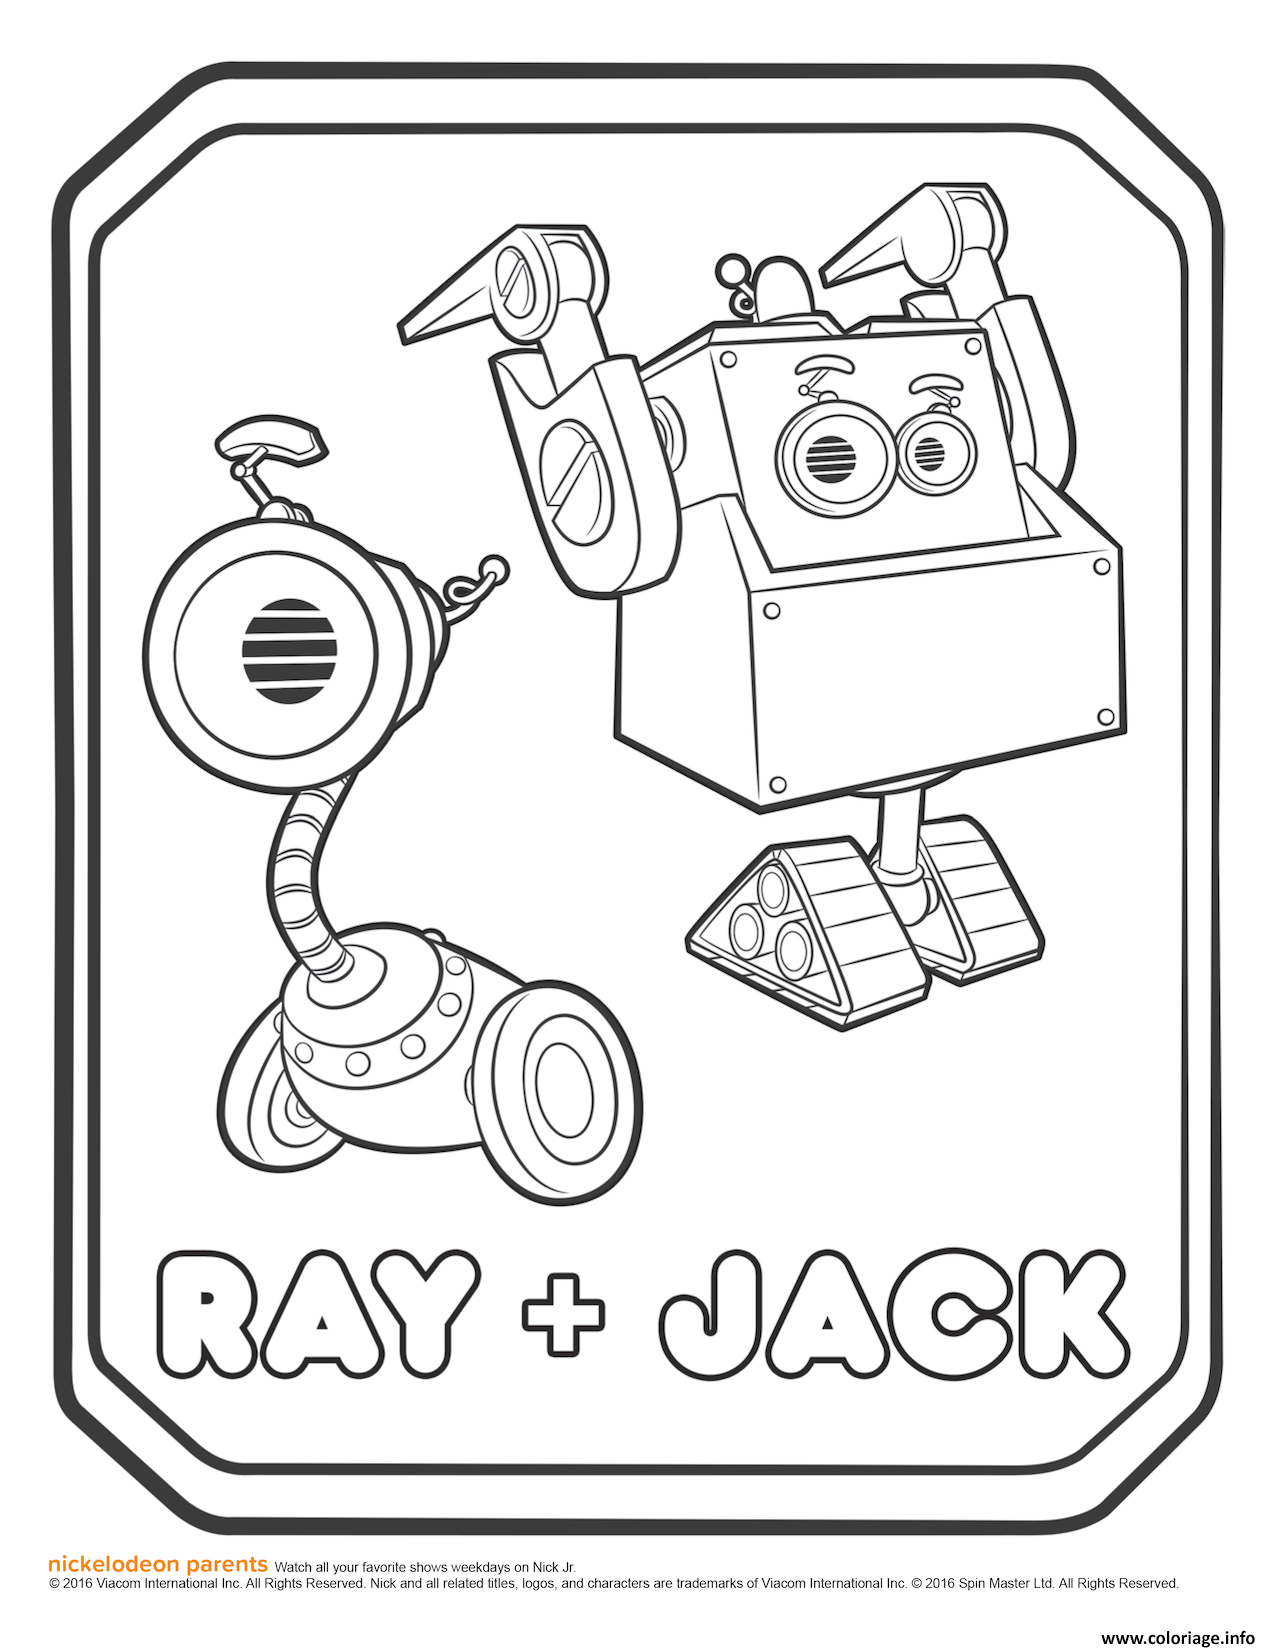 Coloriage Rusty Rivets Ray And Jack Coloring Page Dessin à Imprimer